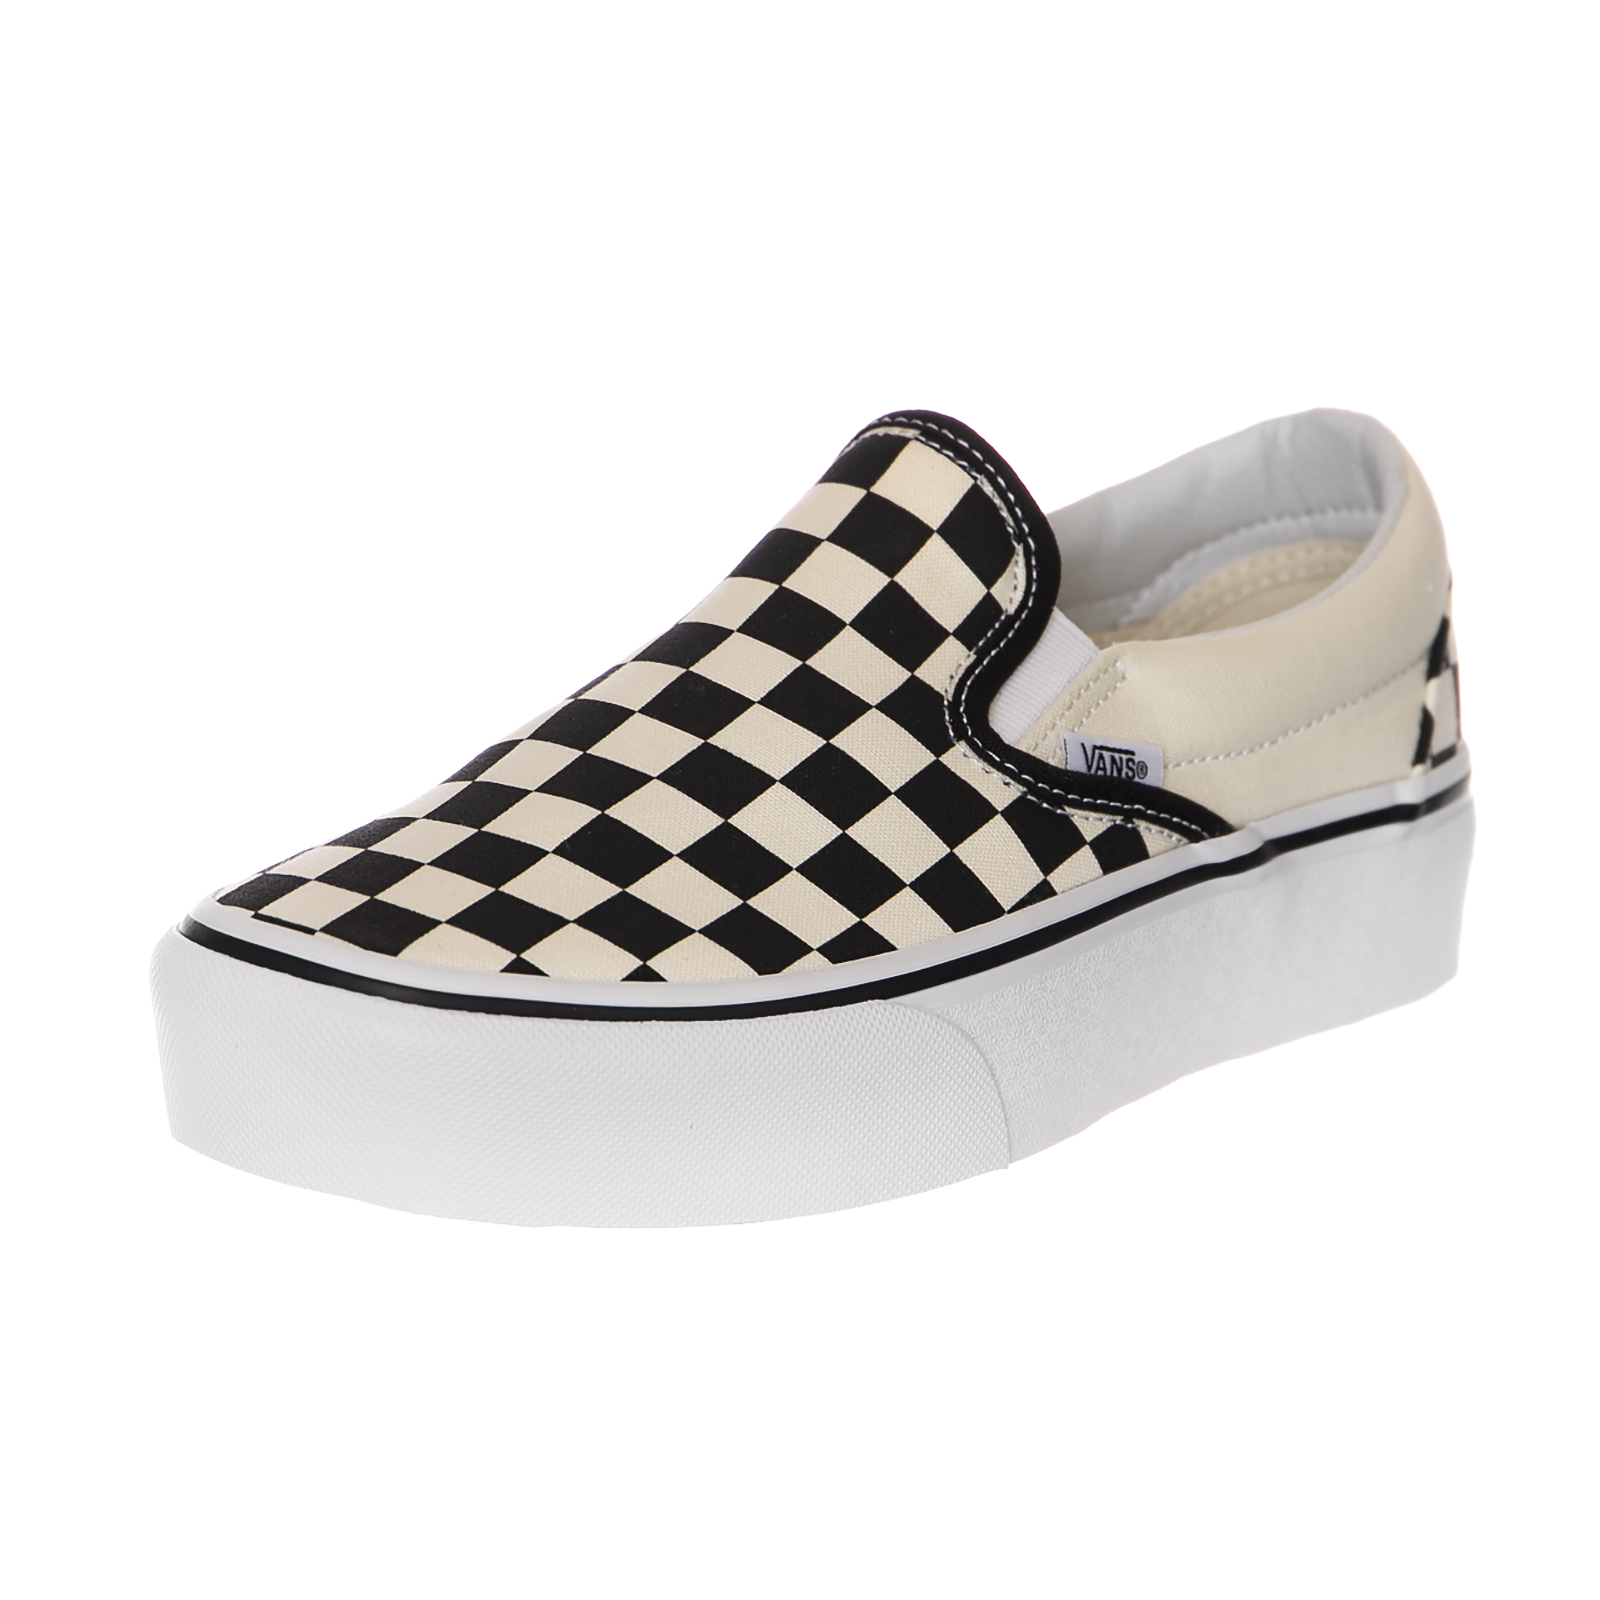 Vans Sneakers Ua Classic Slip-On P Black Checkerboard / White